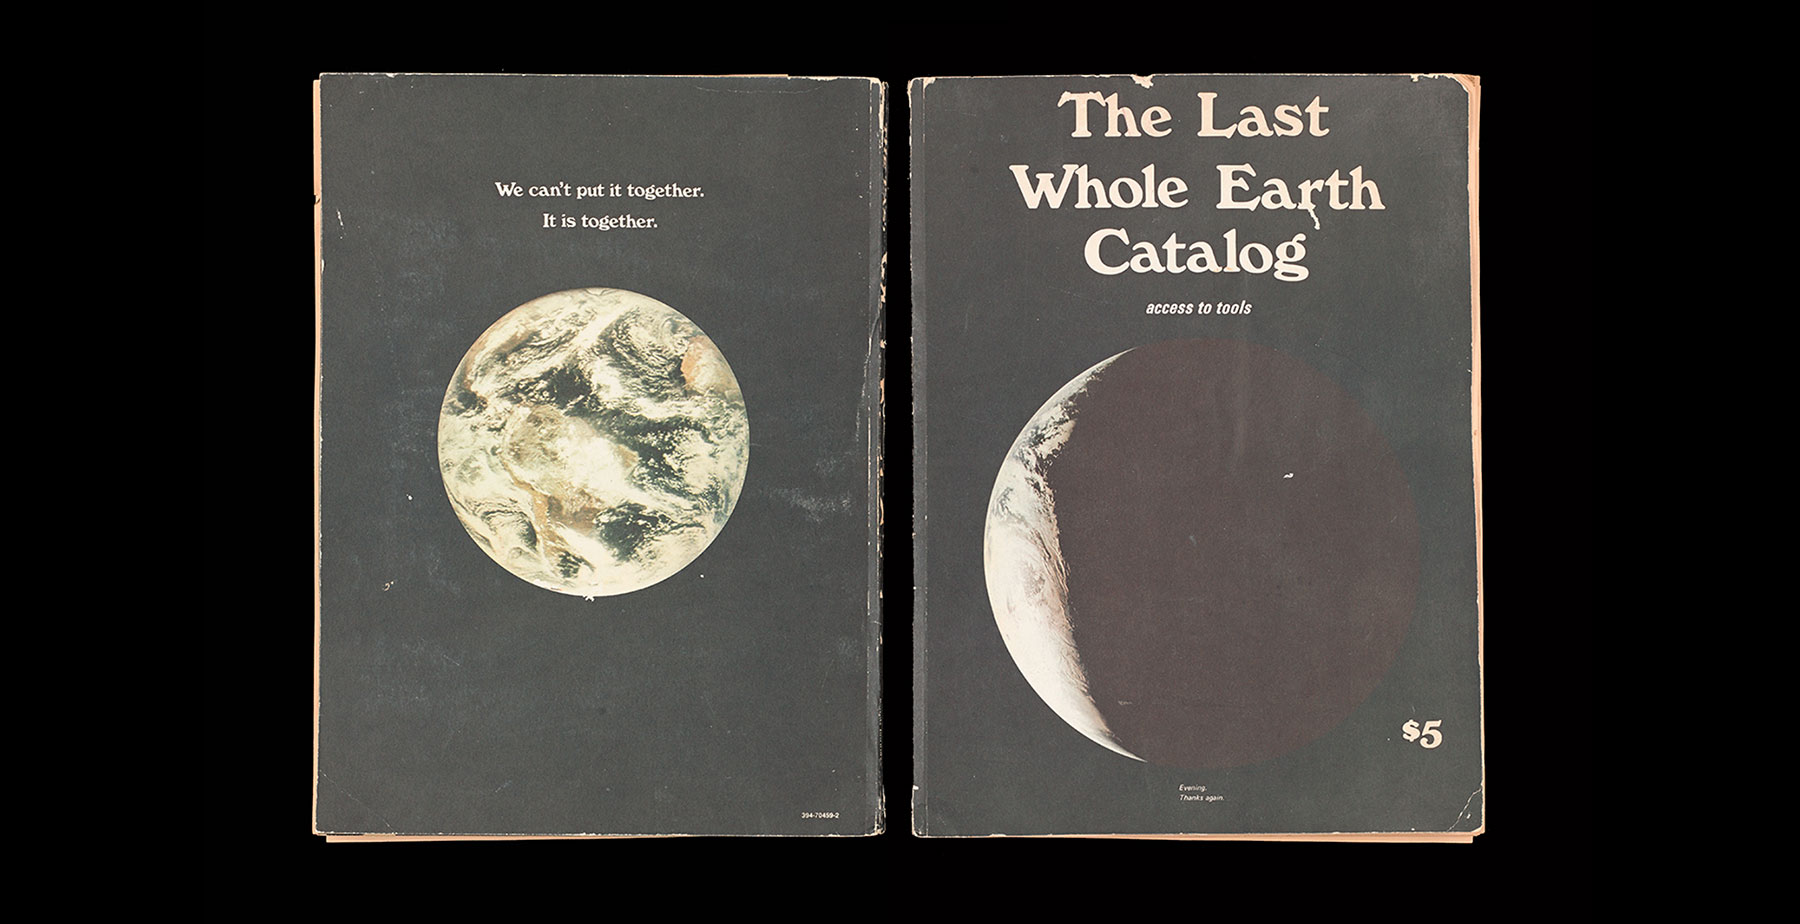 The last Whole Earth Catalog access to- tools Stewart Brand couverture 1971